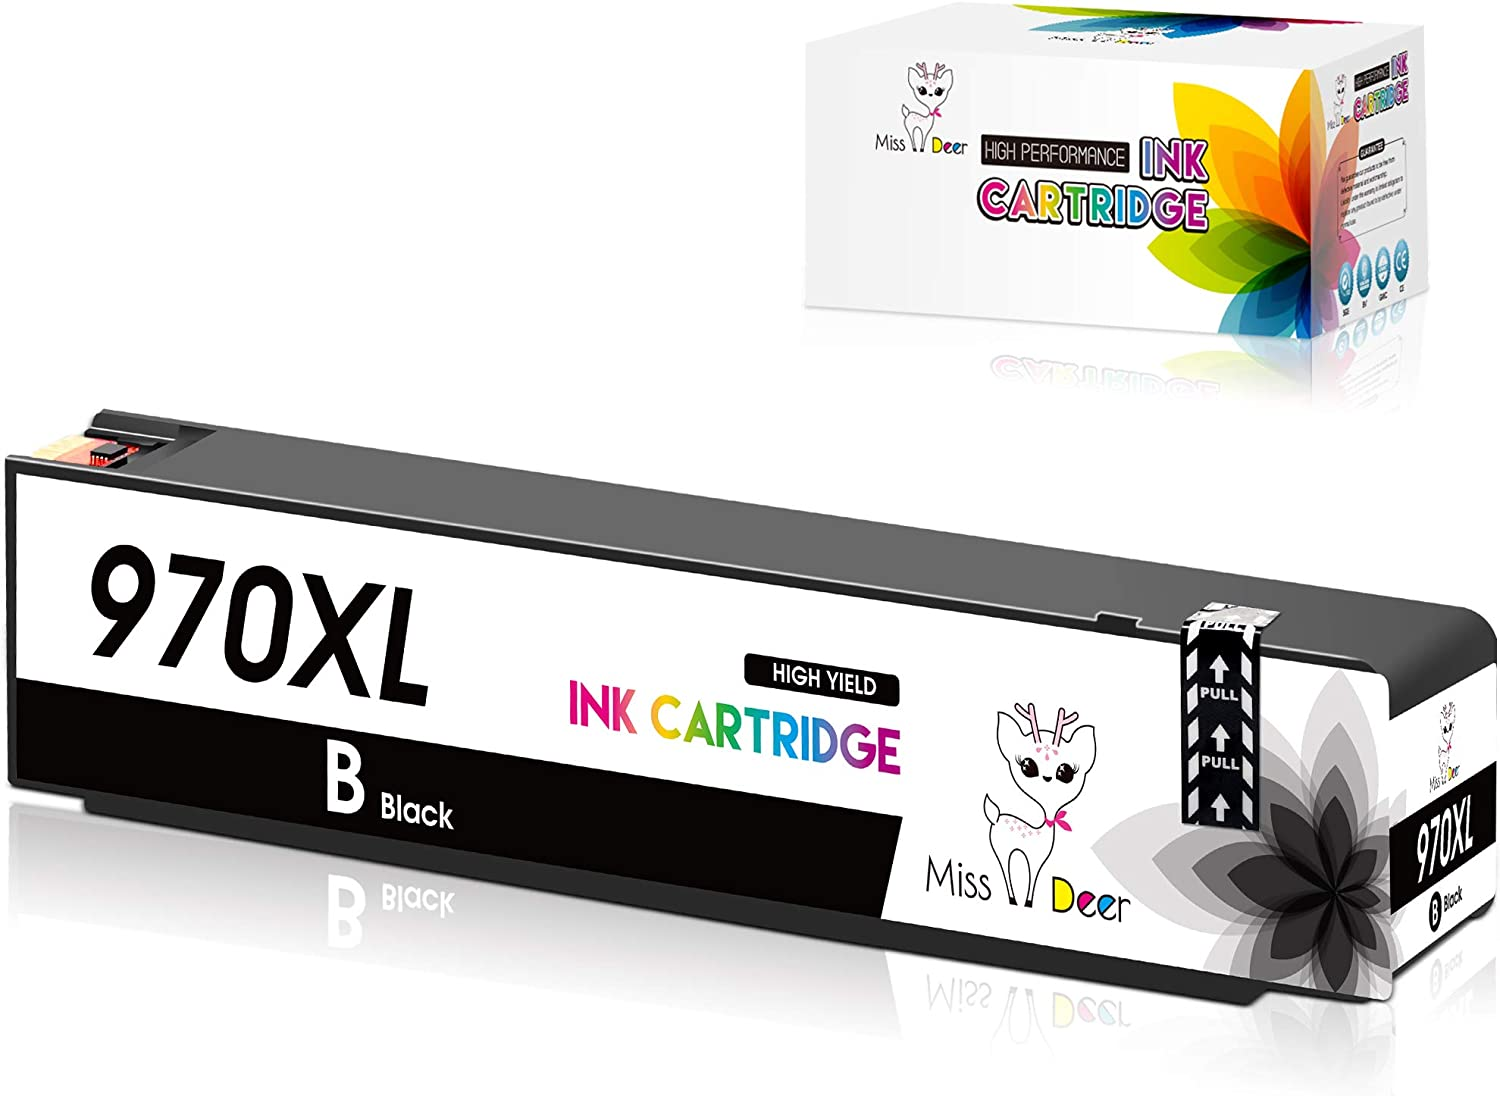 Miss Deer 970XL 971XL 970 971 Black Compatible Ink Cartridges Replacement for HP 970 971 XL,Work for HP Officejet Pro X576dw X451dn X451dw X476dw X476dn X551dw Printer (1 Black)